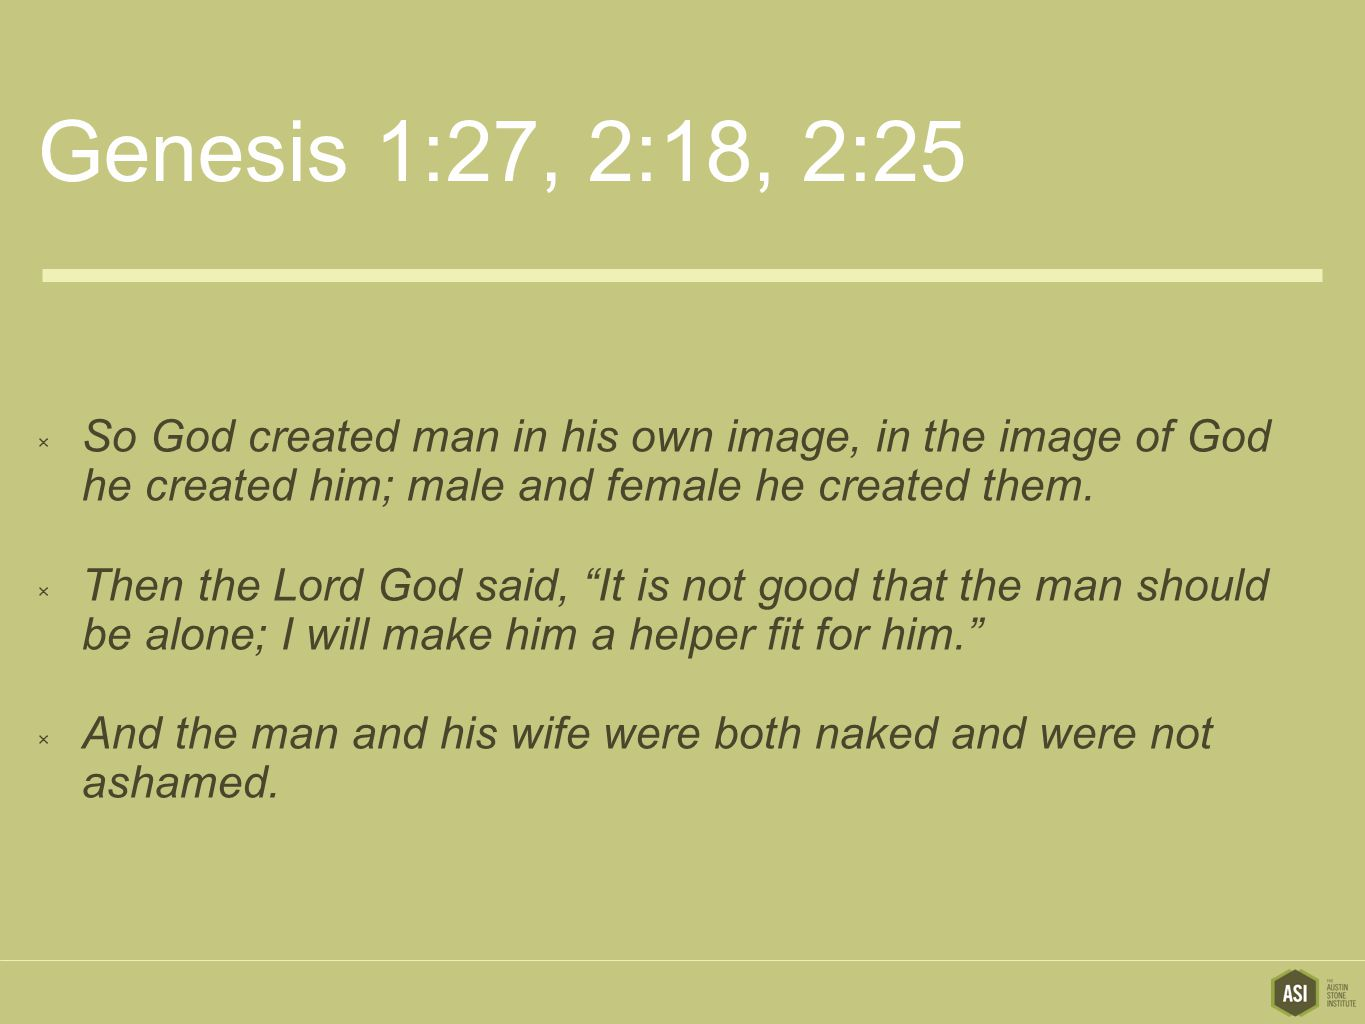 Genesis 1:27, 2:18, 2:25  So God created man in his own image, in the image of God he created him; male and female he created them.